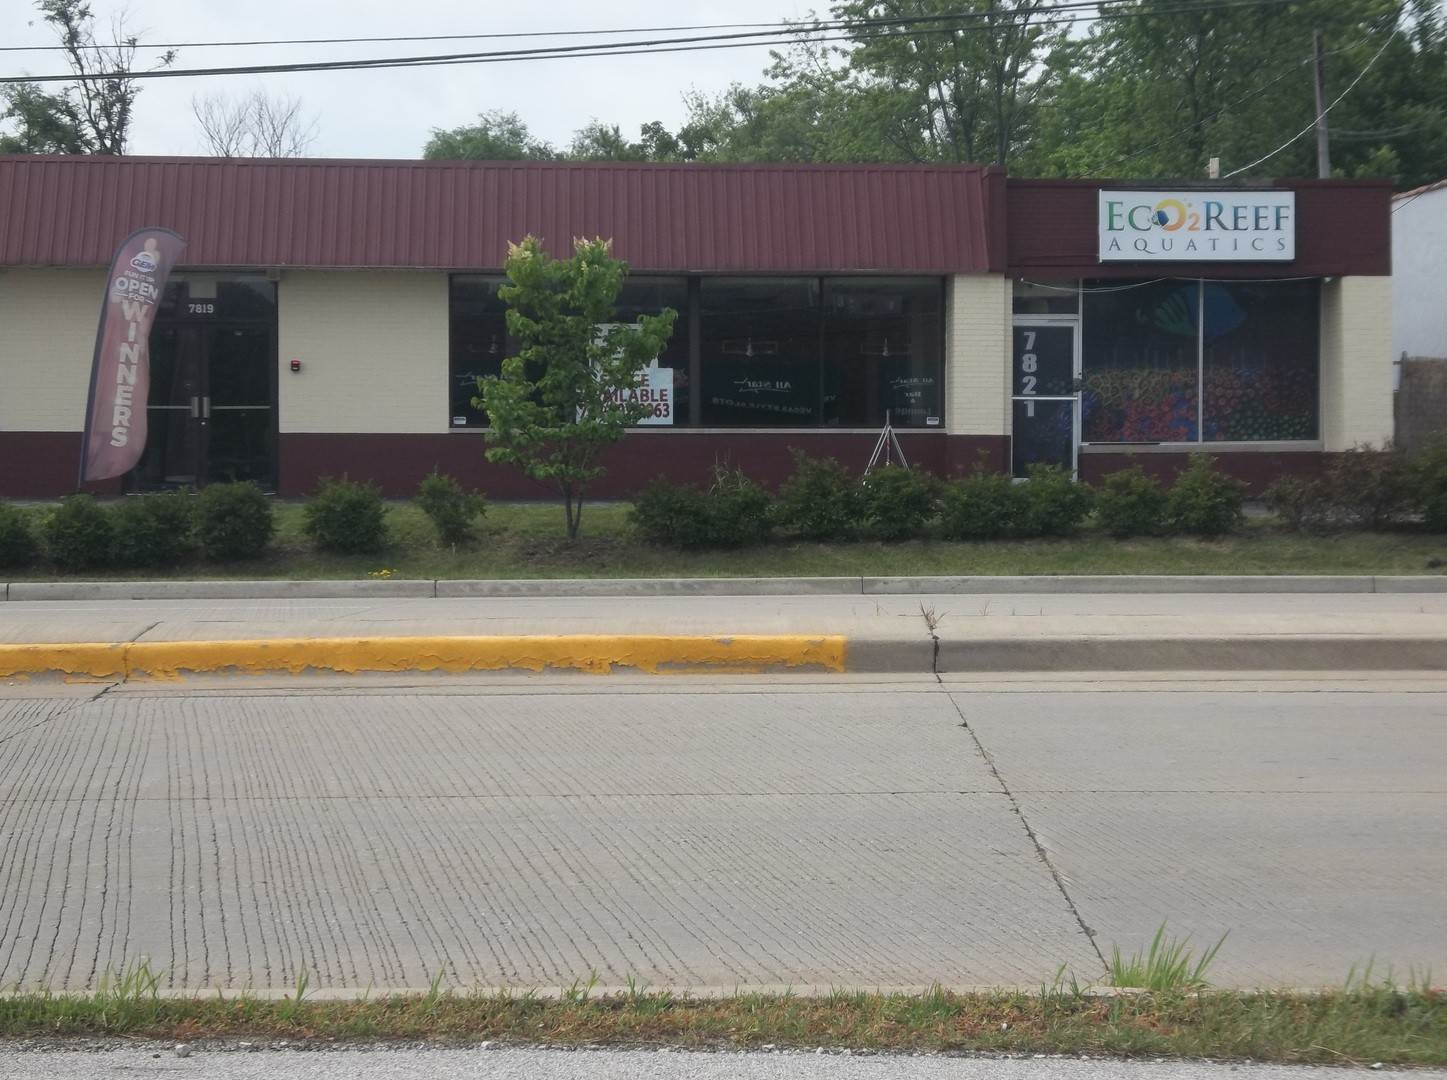 Comercial em 7819 W Lincoln Highway Frankfort, Illinois 60423 Estados Unidos